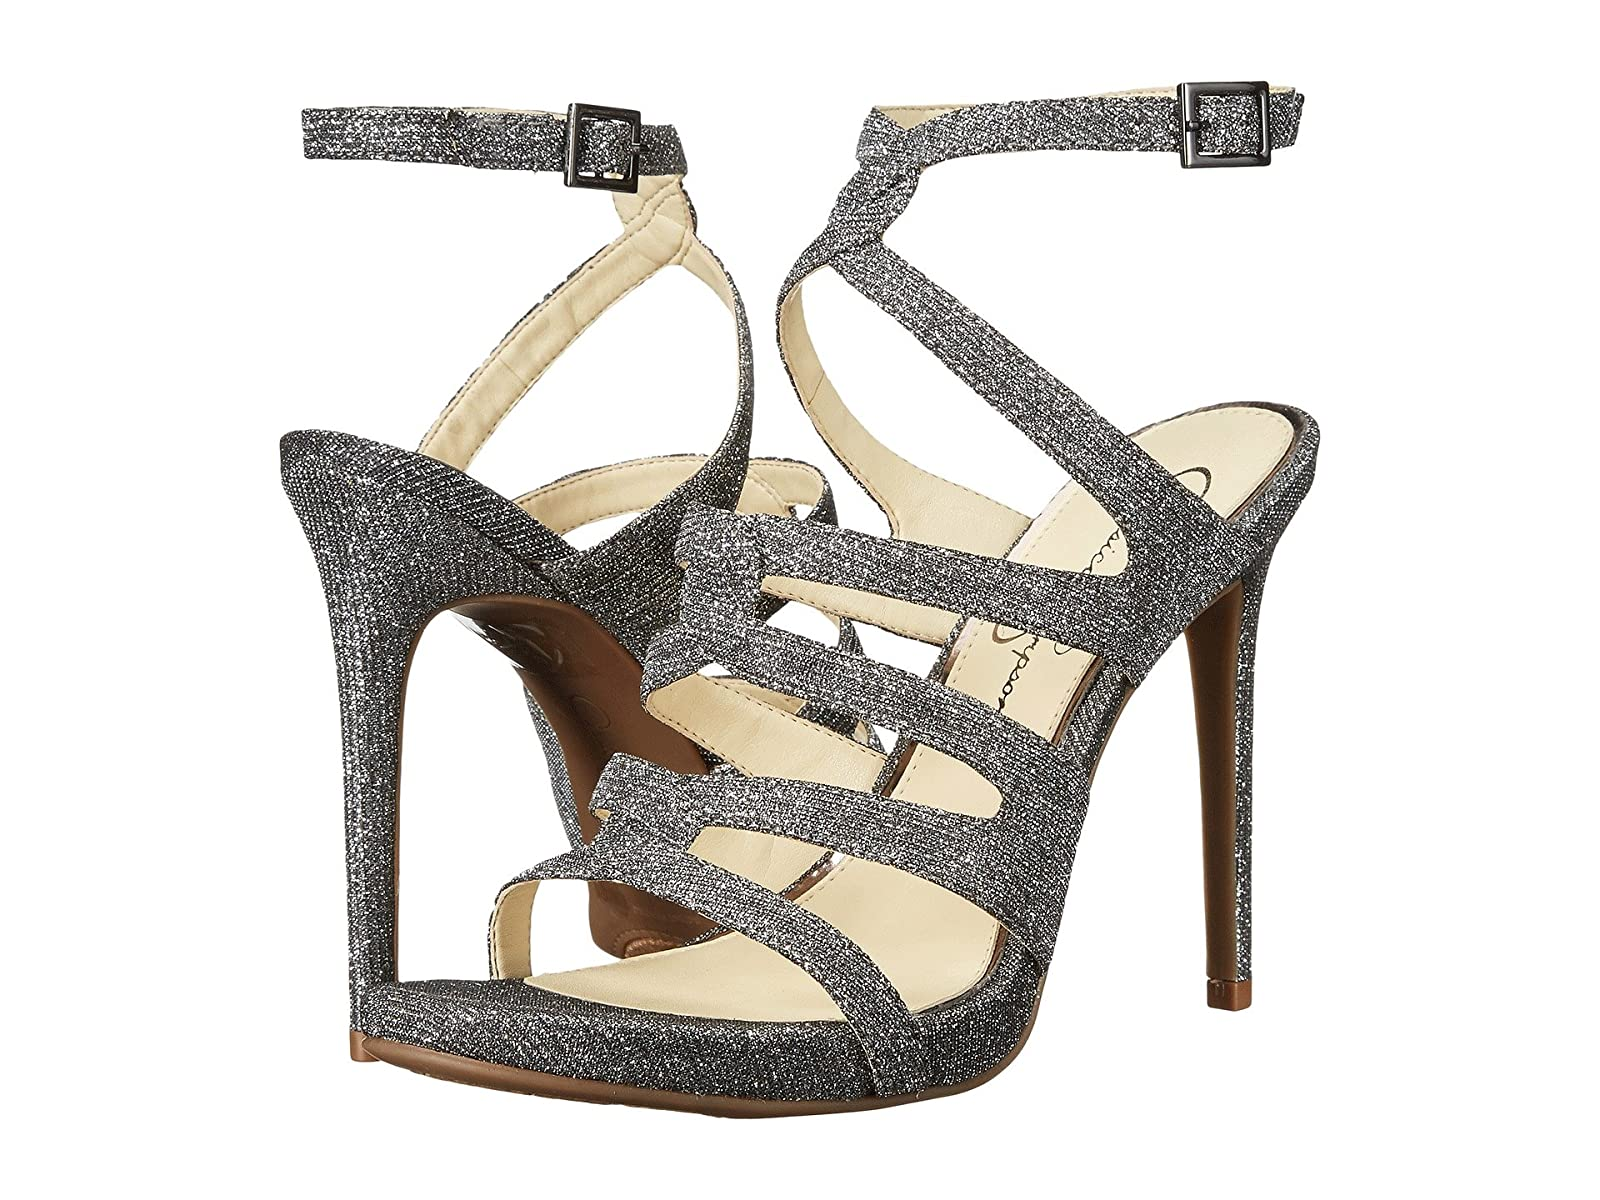 Jessica Simpson ReyseCheap and distinctive eye-catching shoes